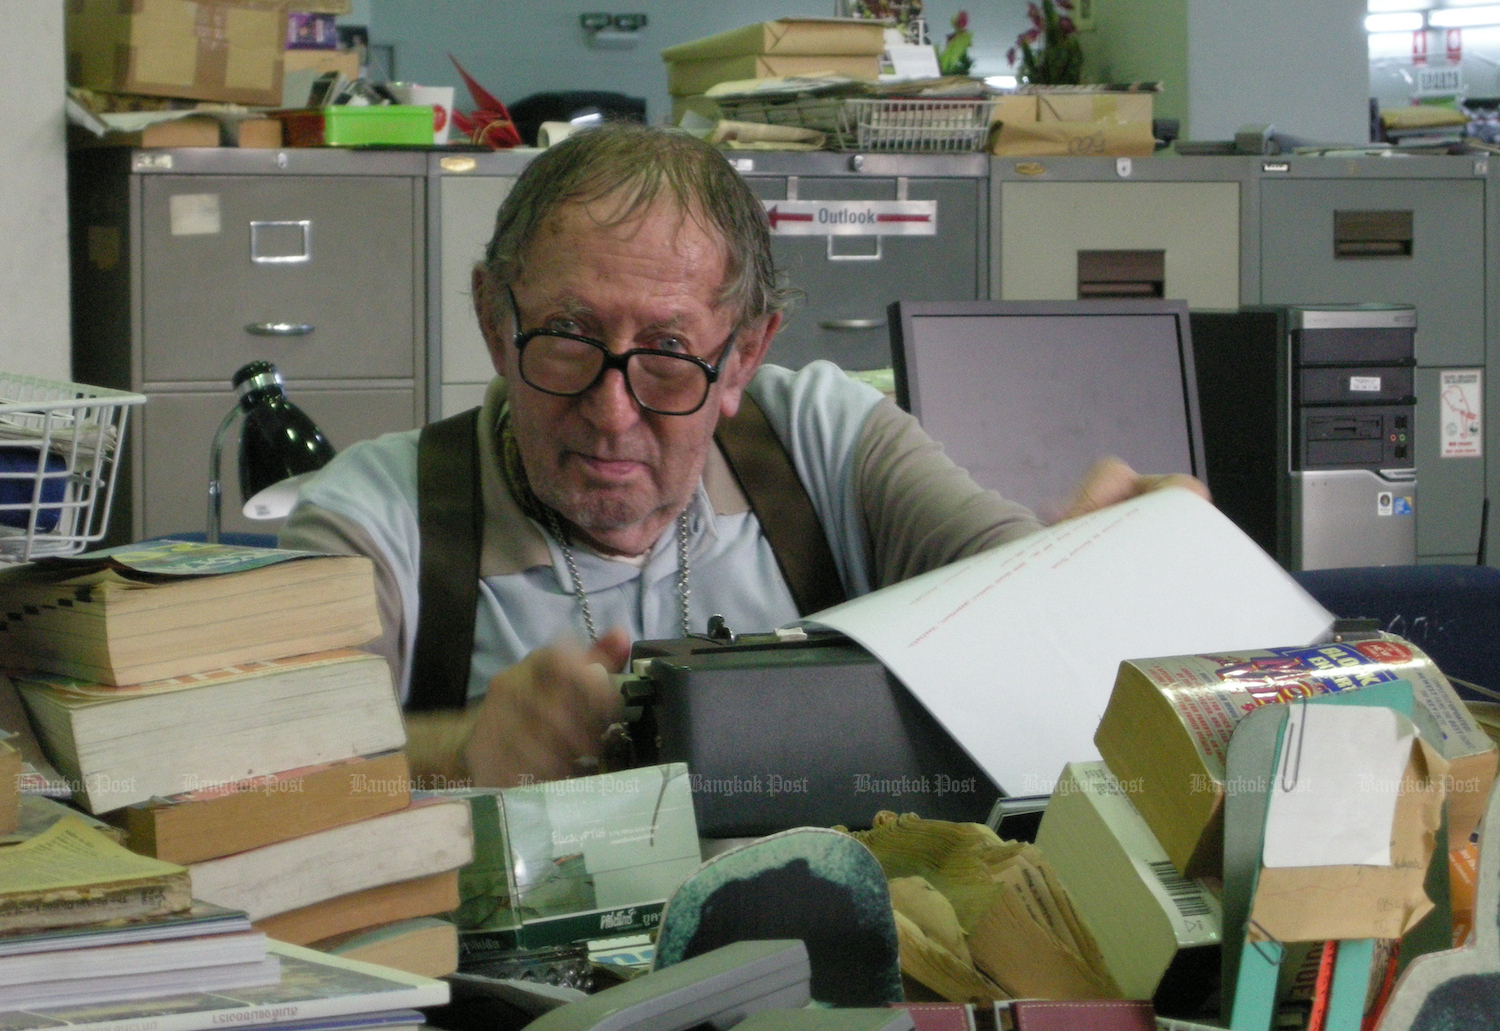 For Bernard Trink, seen here in the Bangkok Post newsroom in 2010, the typewriter was always his word processor of choice. (Photo: Sayant Pornnantharat)